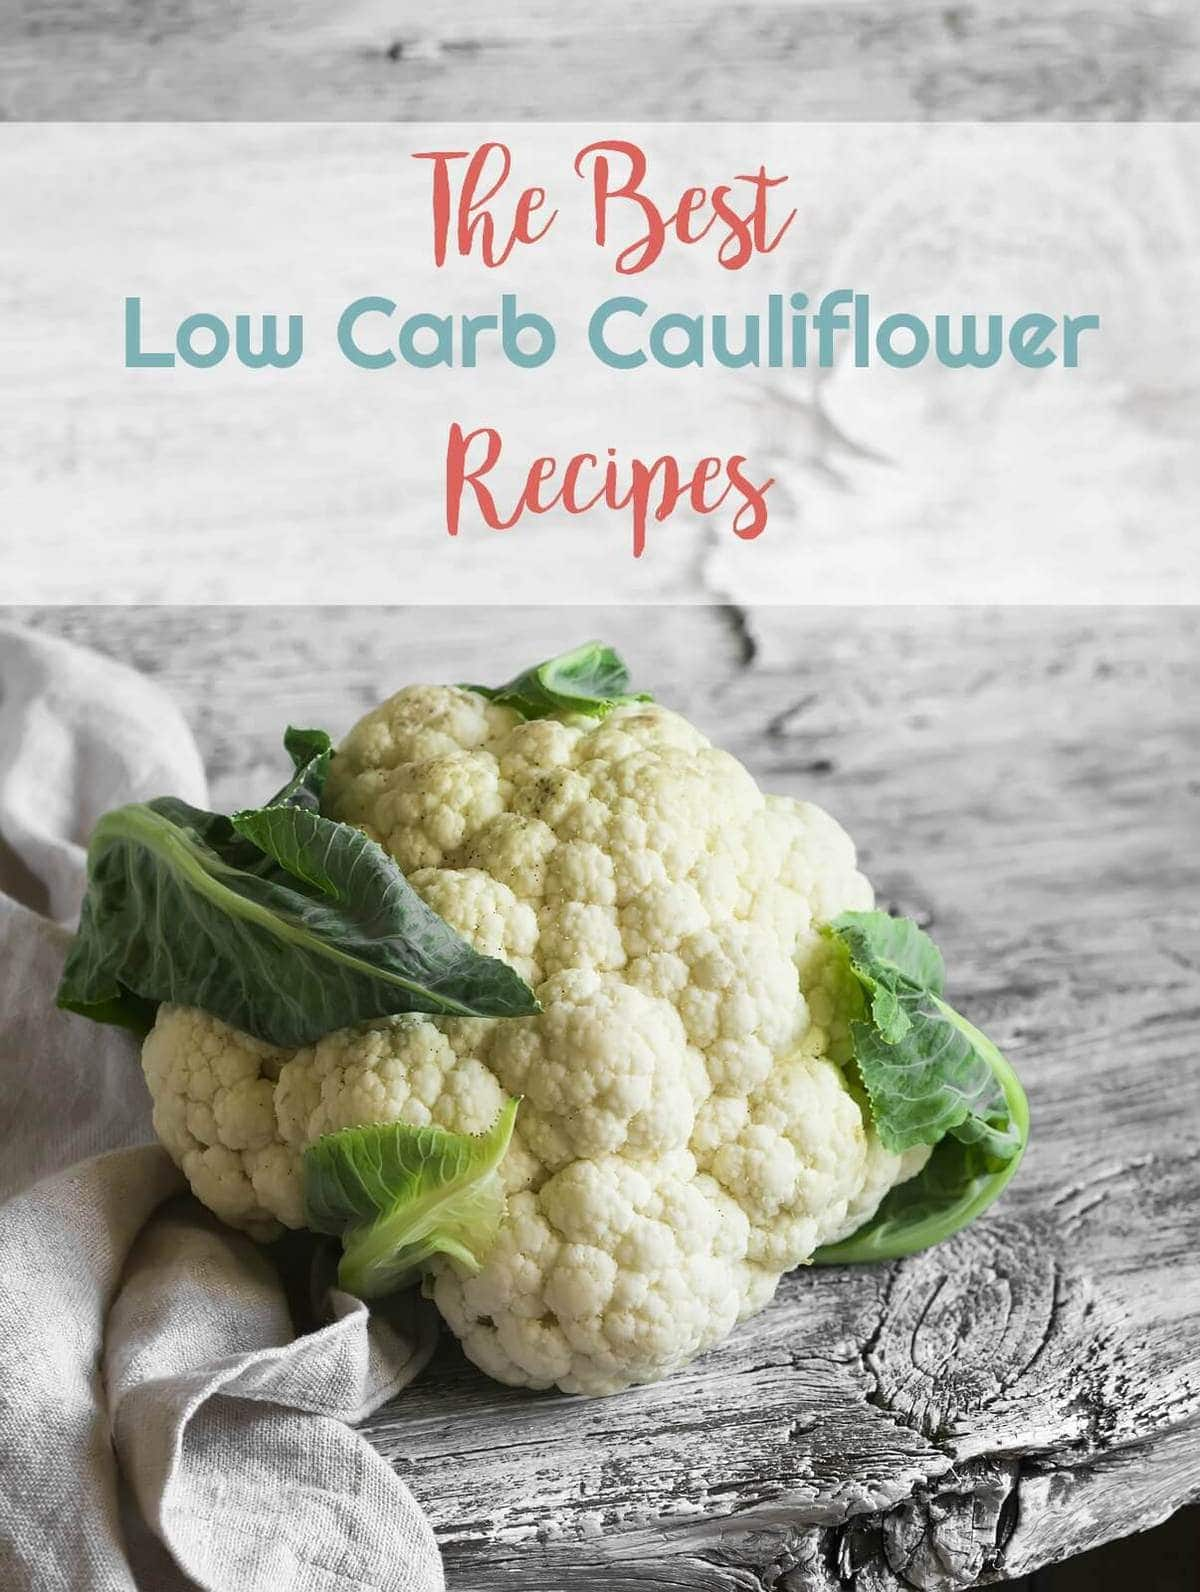 The Best Low Carb Cauliflower Recipes | Peace Love Low Carb